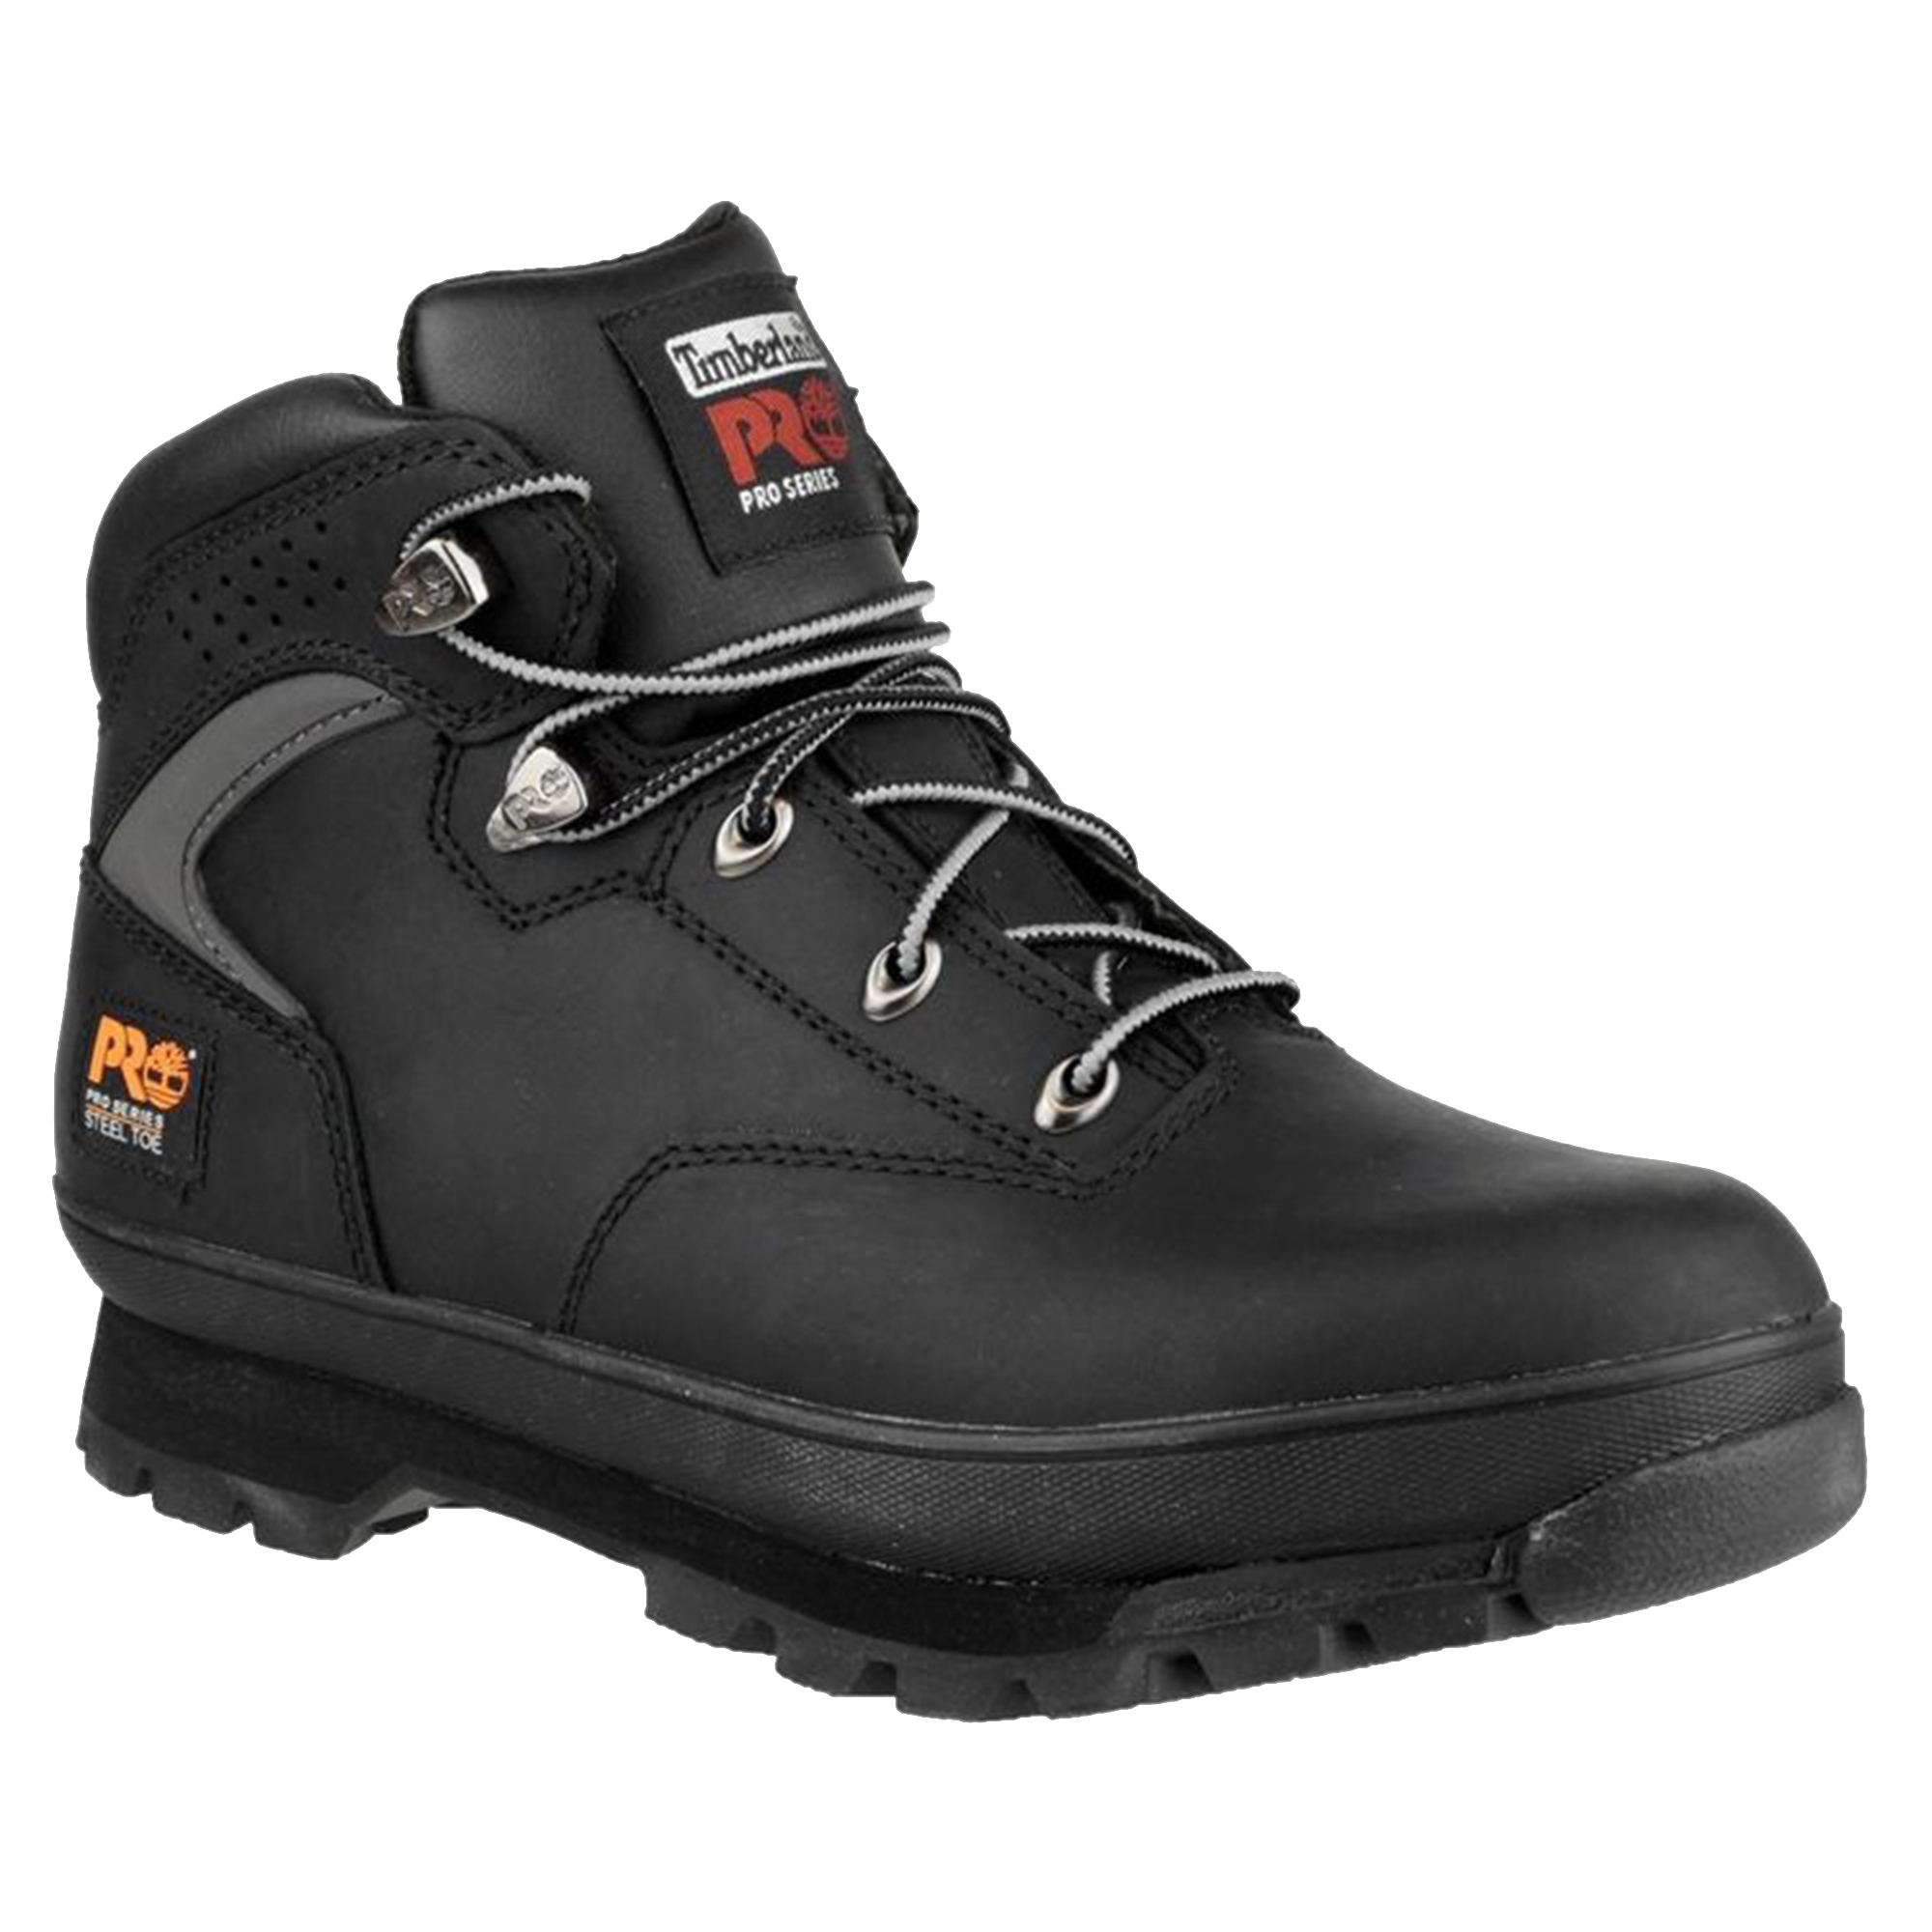 Ebay 1 Euro Timberland Pro Mens Euro Hiker Lace Up Safety Boots Utfs4068 1 6 Uk Black